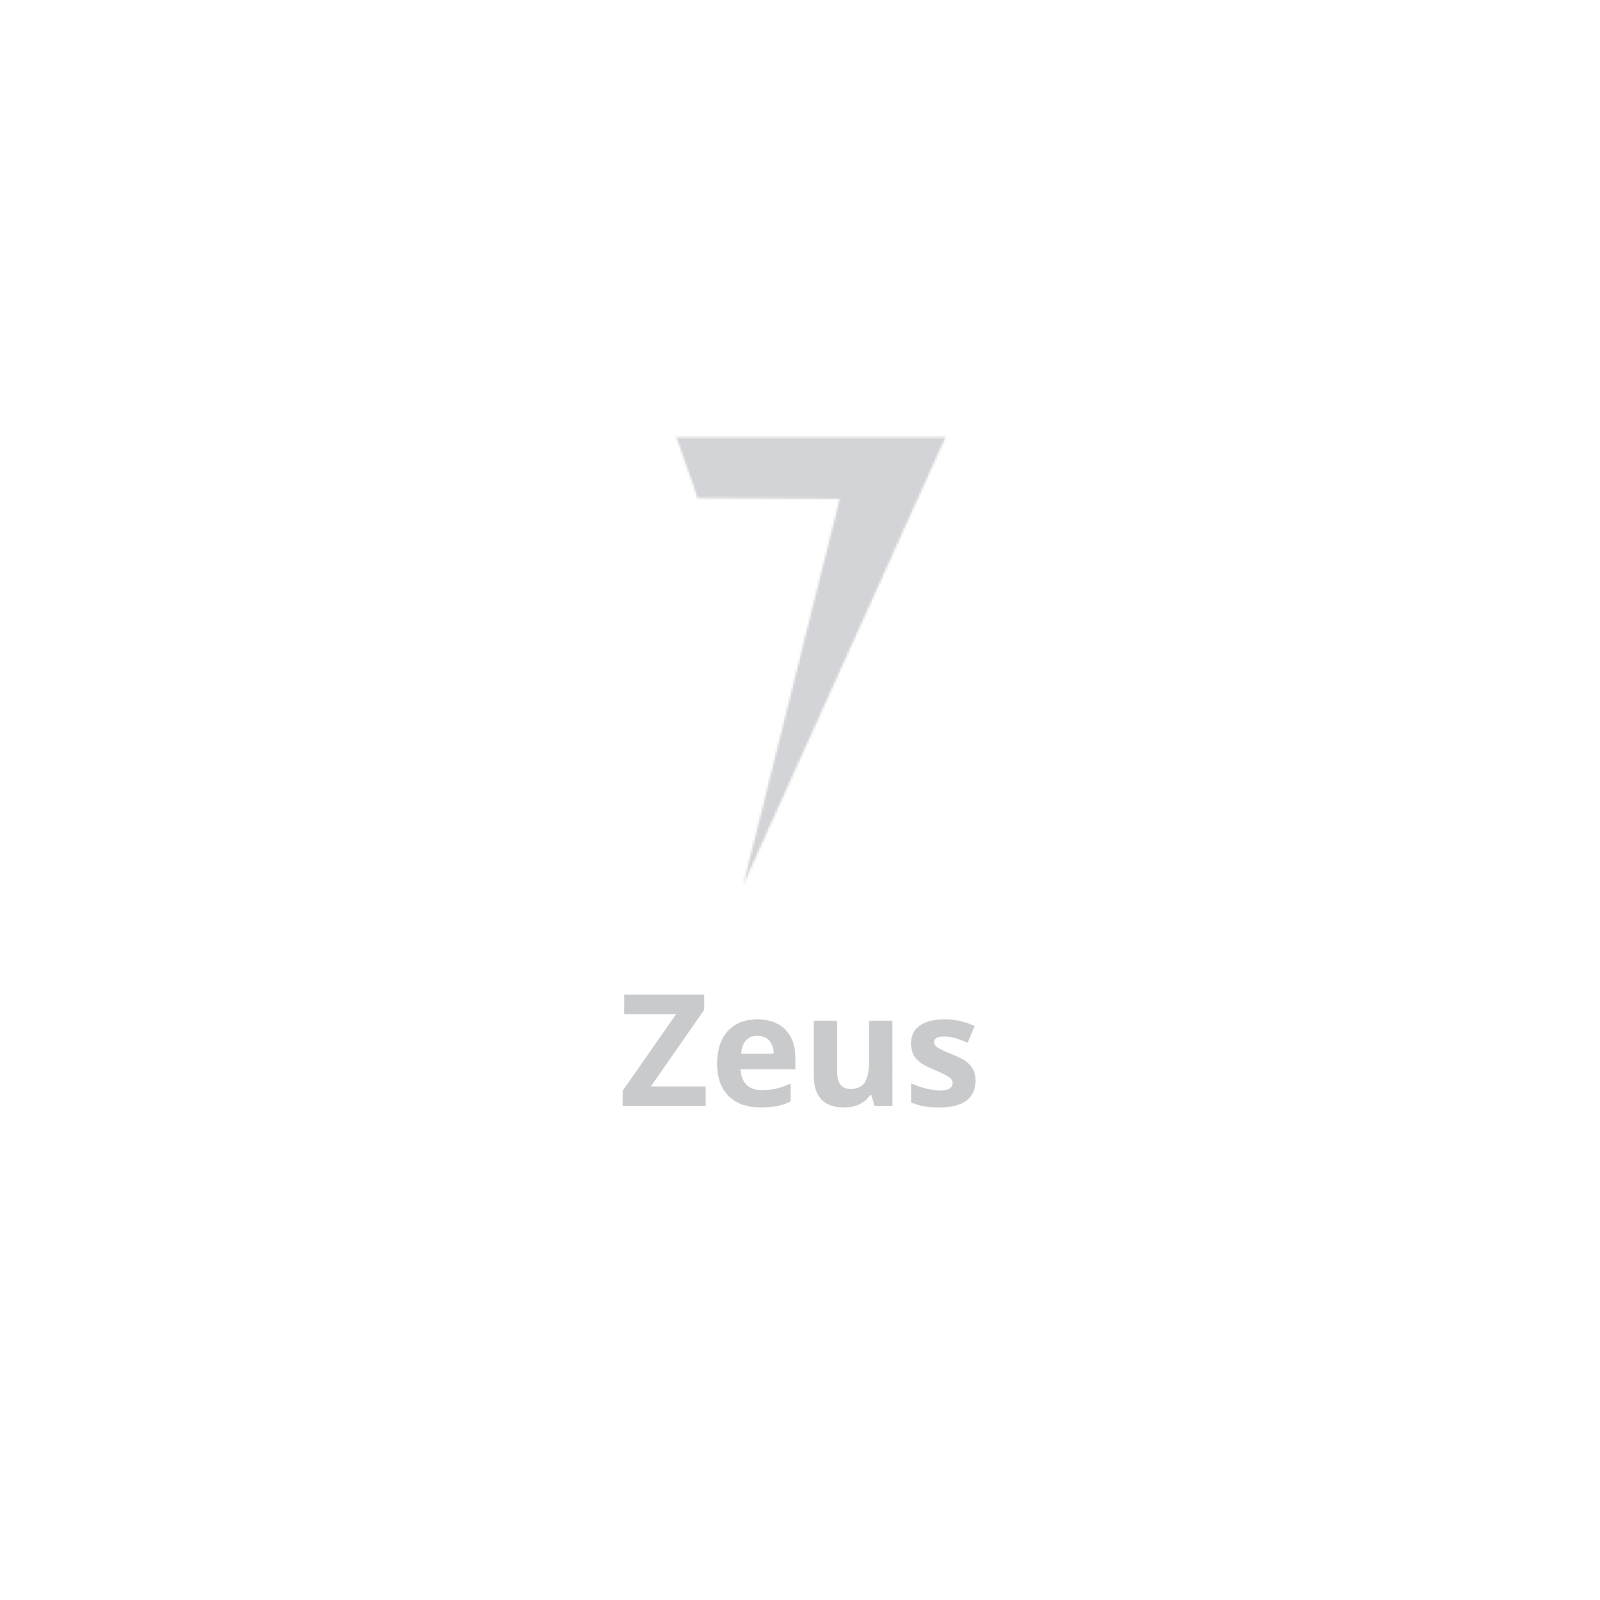 Copy of 7 Zeus Logo